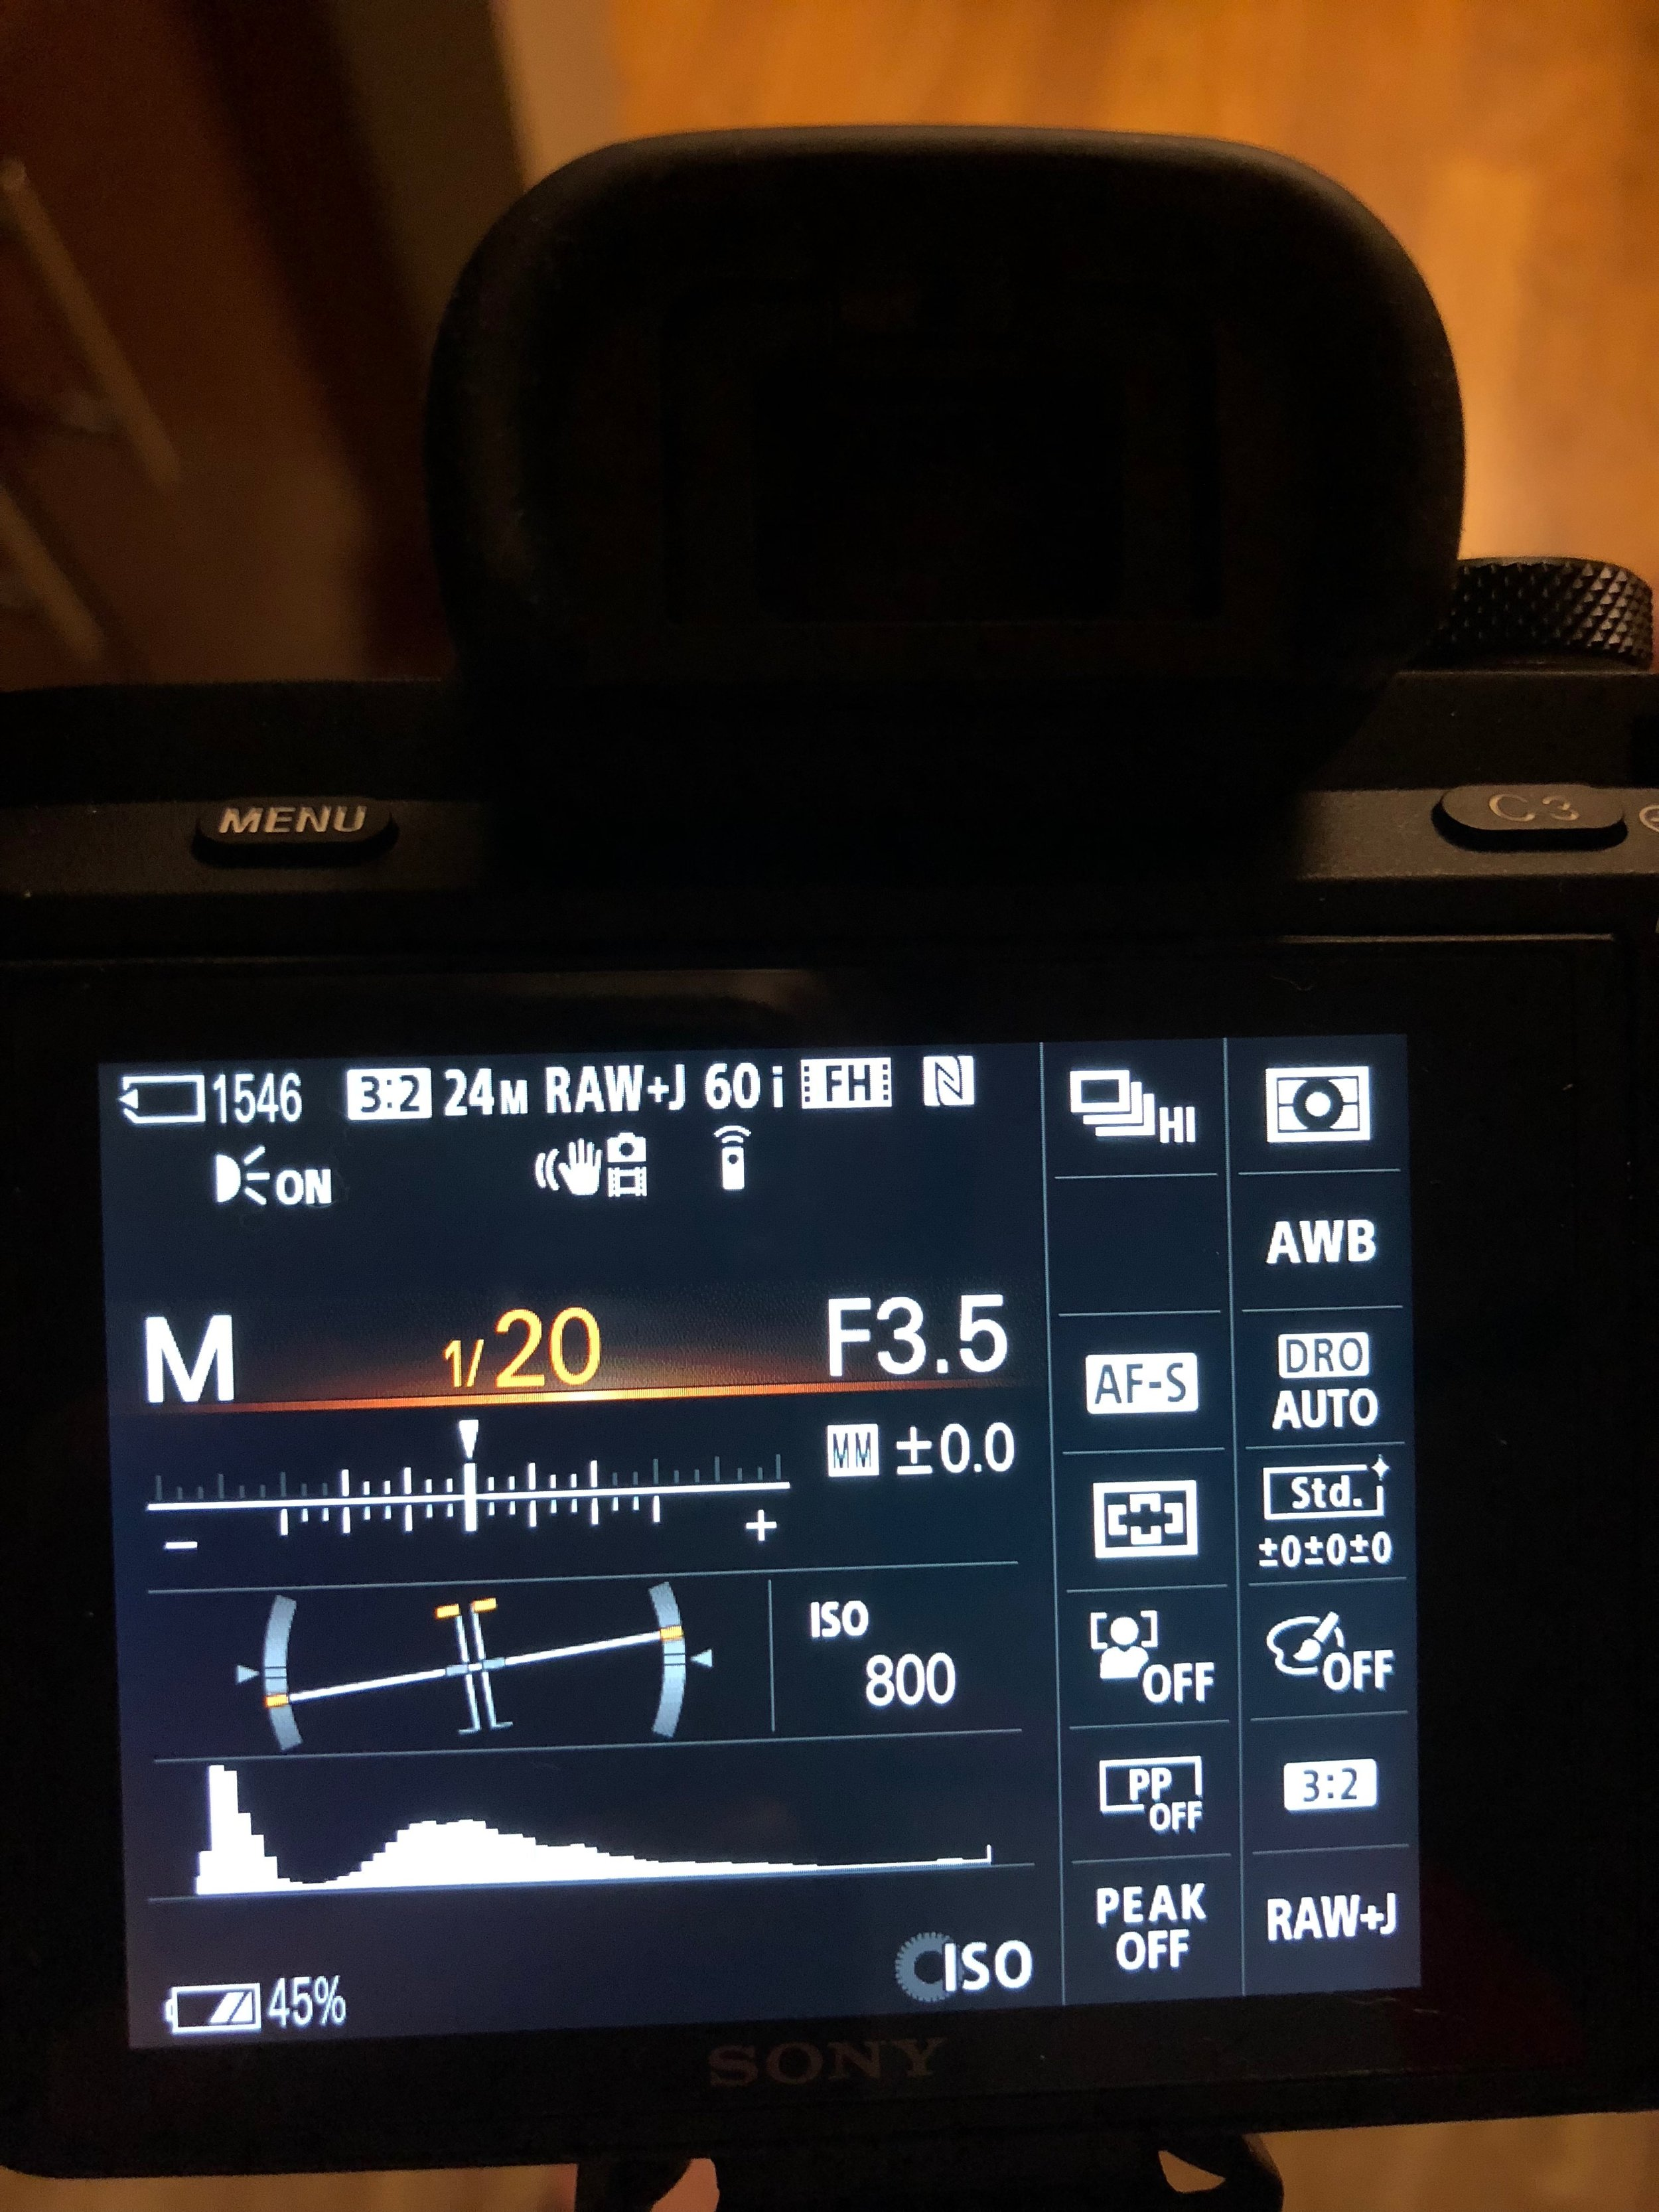 The Light Meter is in the middle, you should be able to see this when you look into your viewfinder.